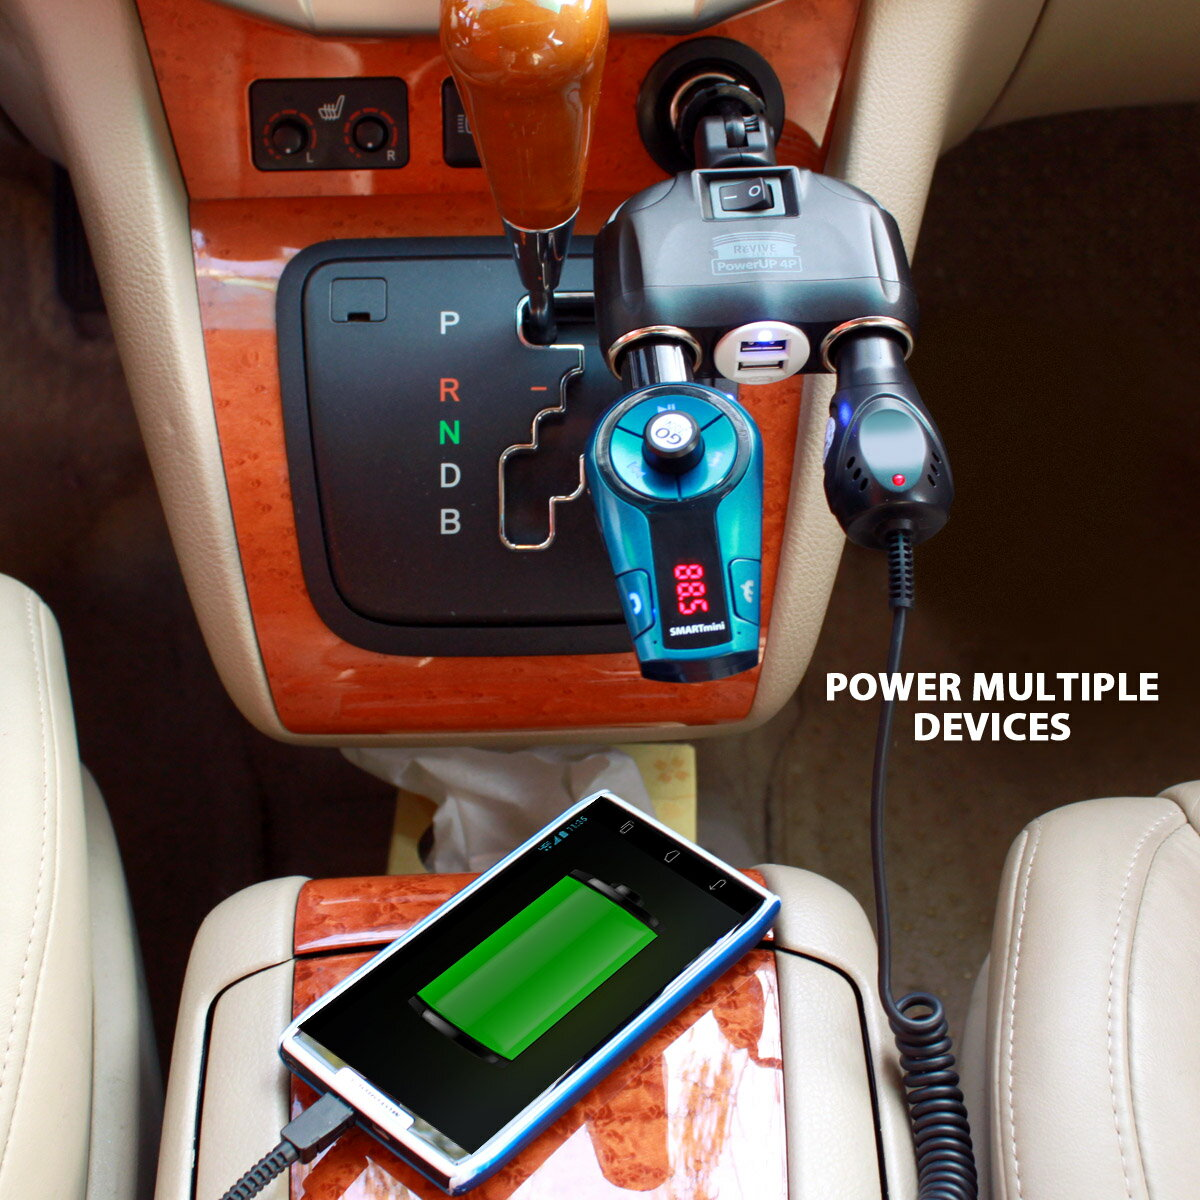 PowerUP 4P 4 Port Car Phone Charger & DC Adapter with Dual USB Charging Ports & DC Ports by ReVIVE 7